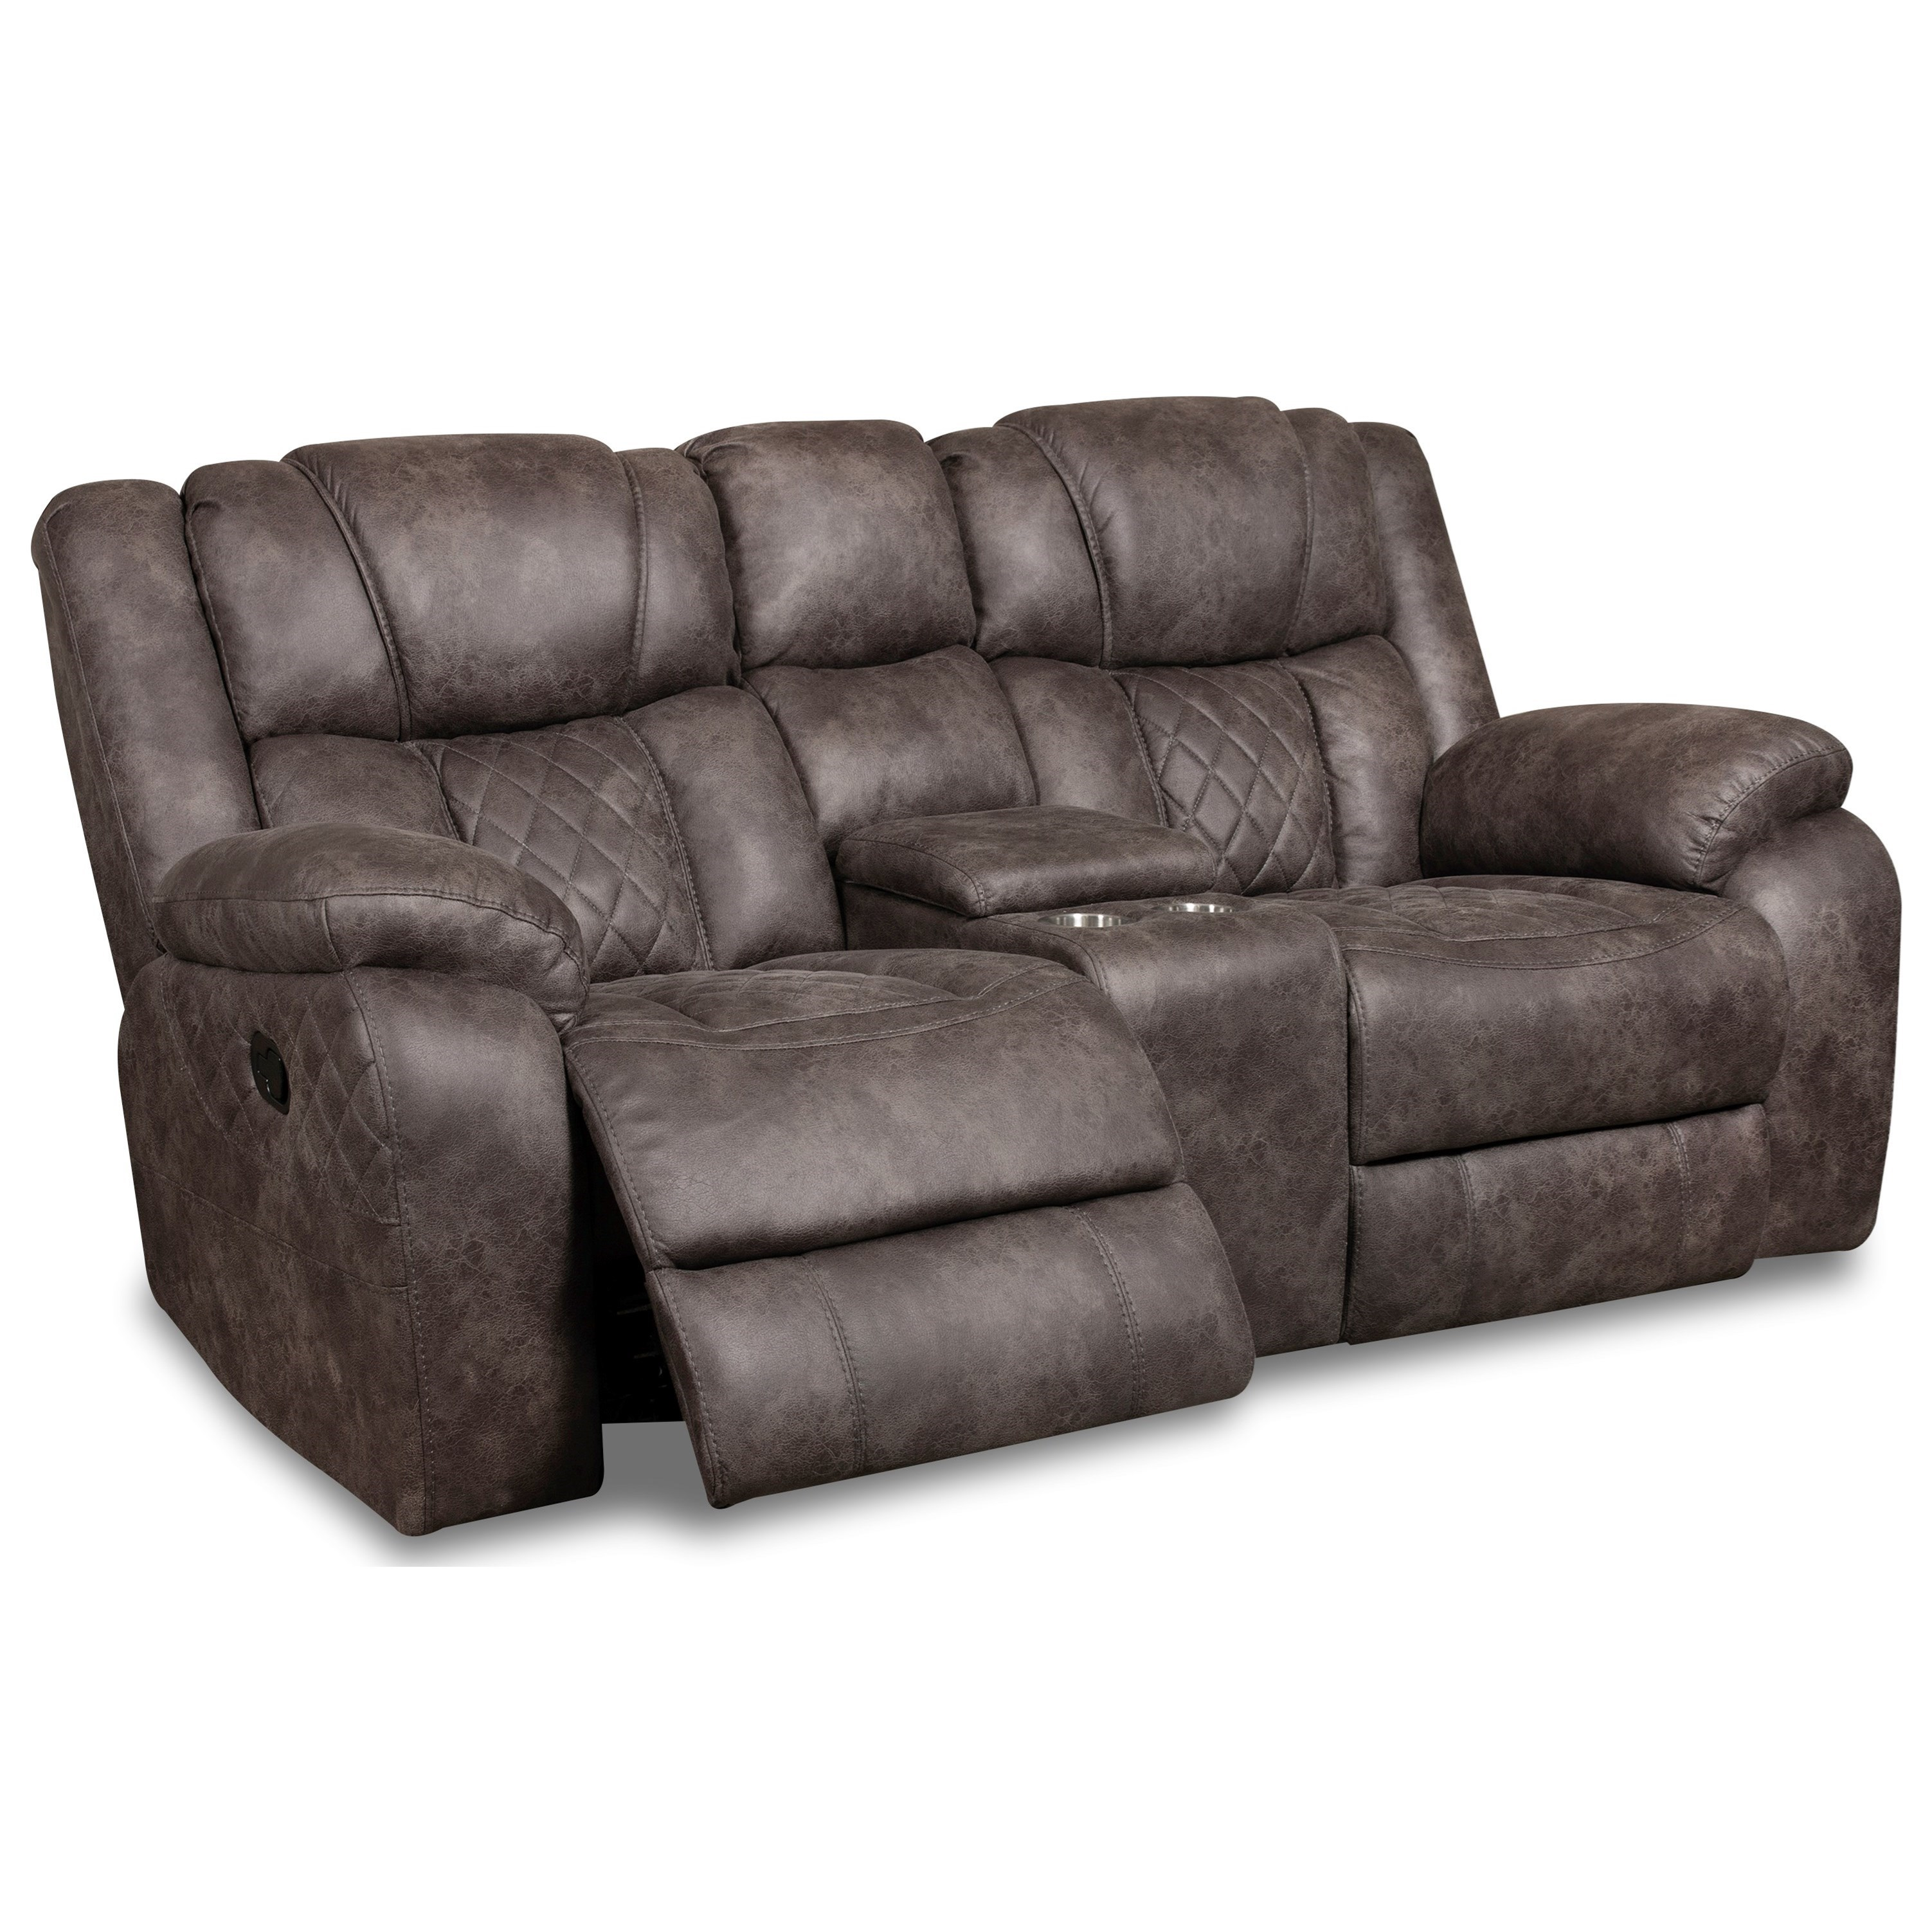 34803 Reclining Loveseat with Console by Corinthian at Story & Lee Furniture